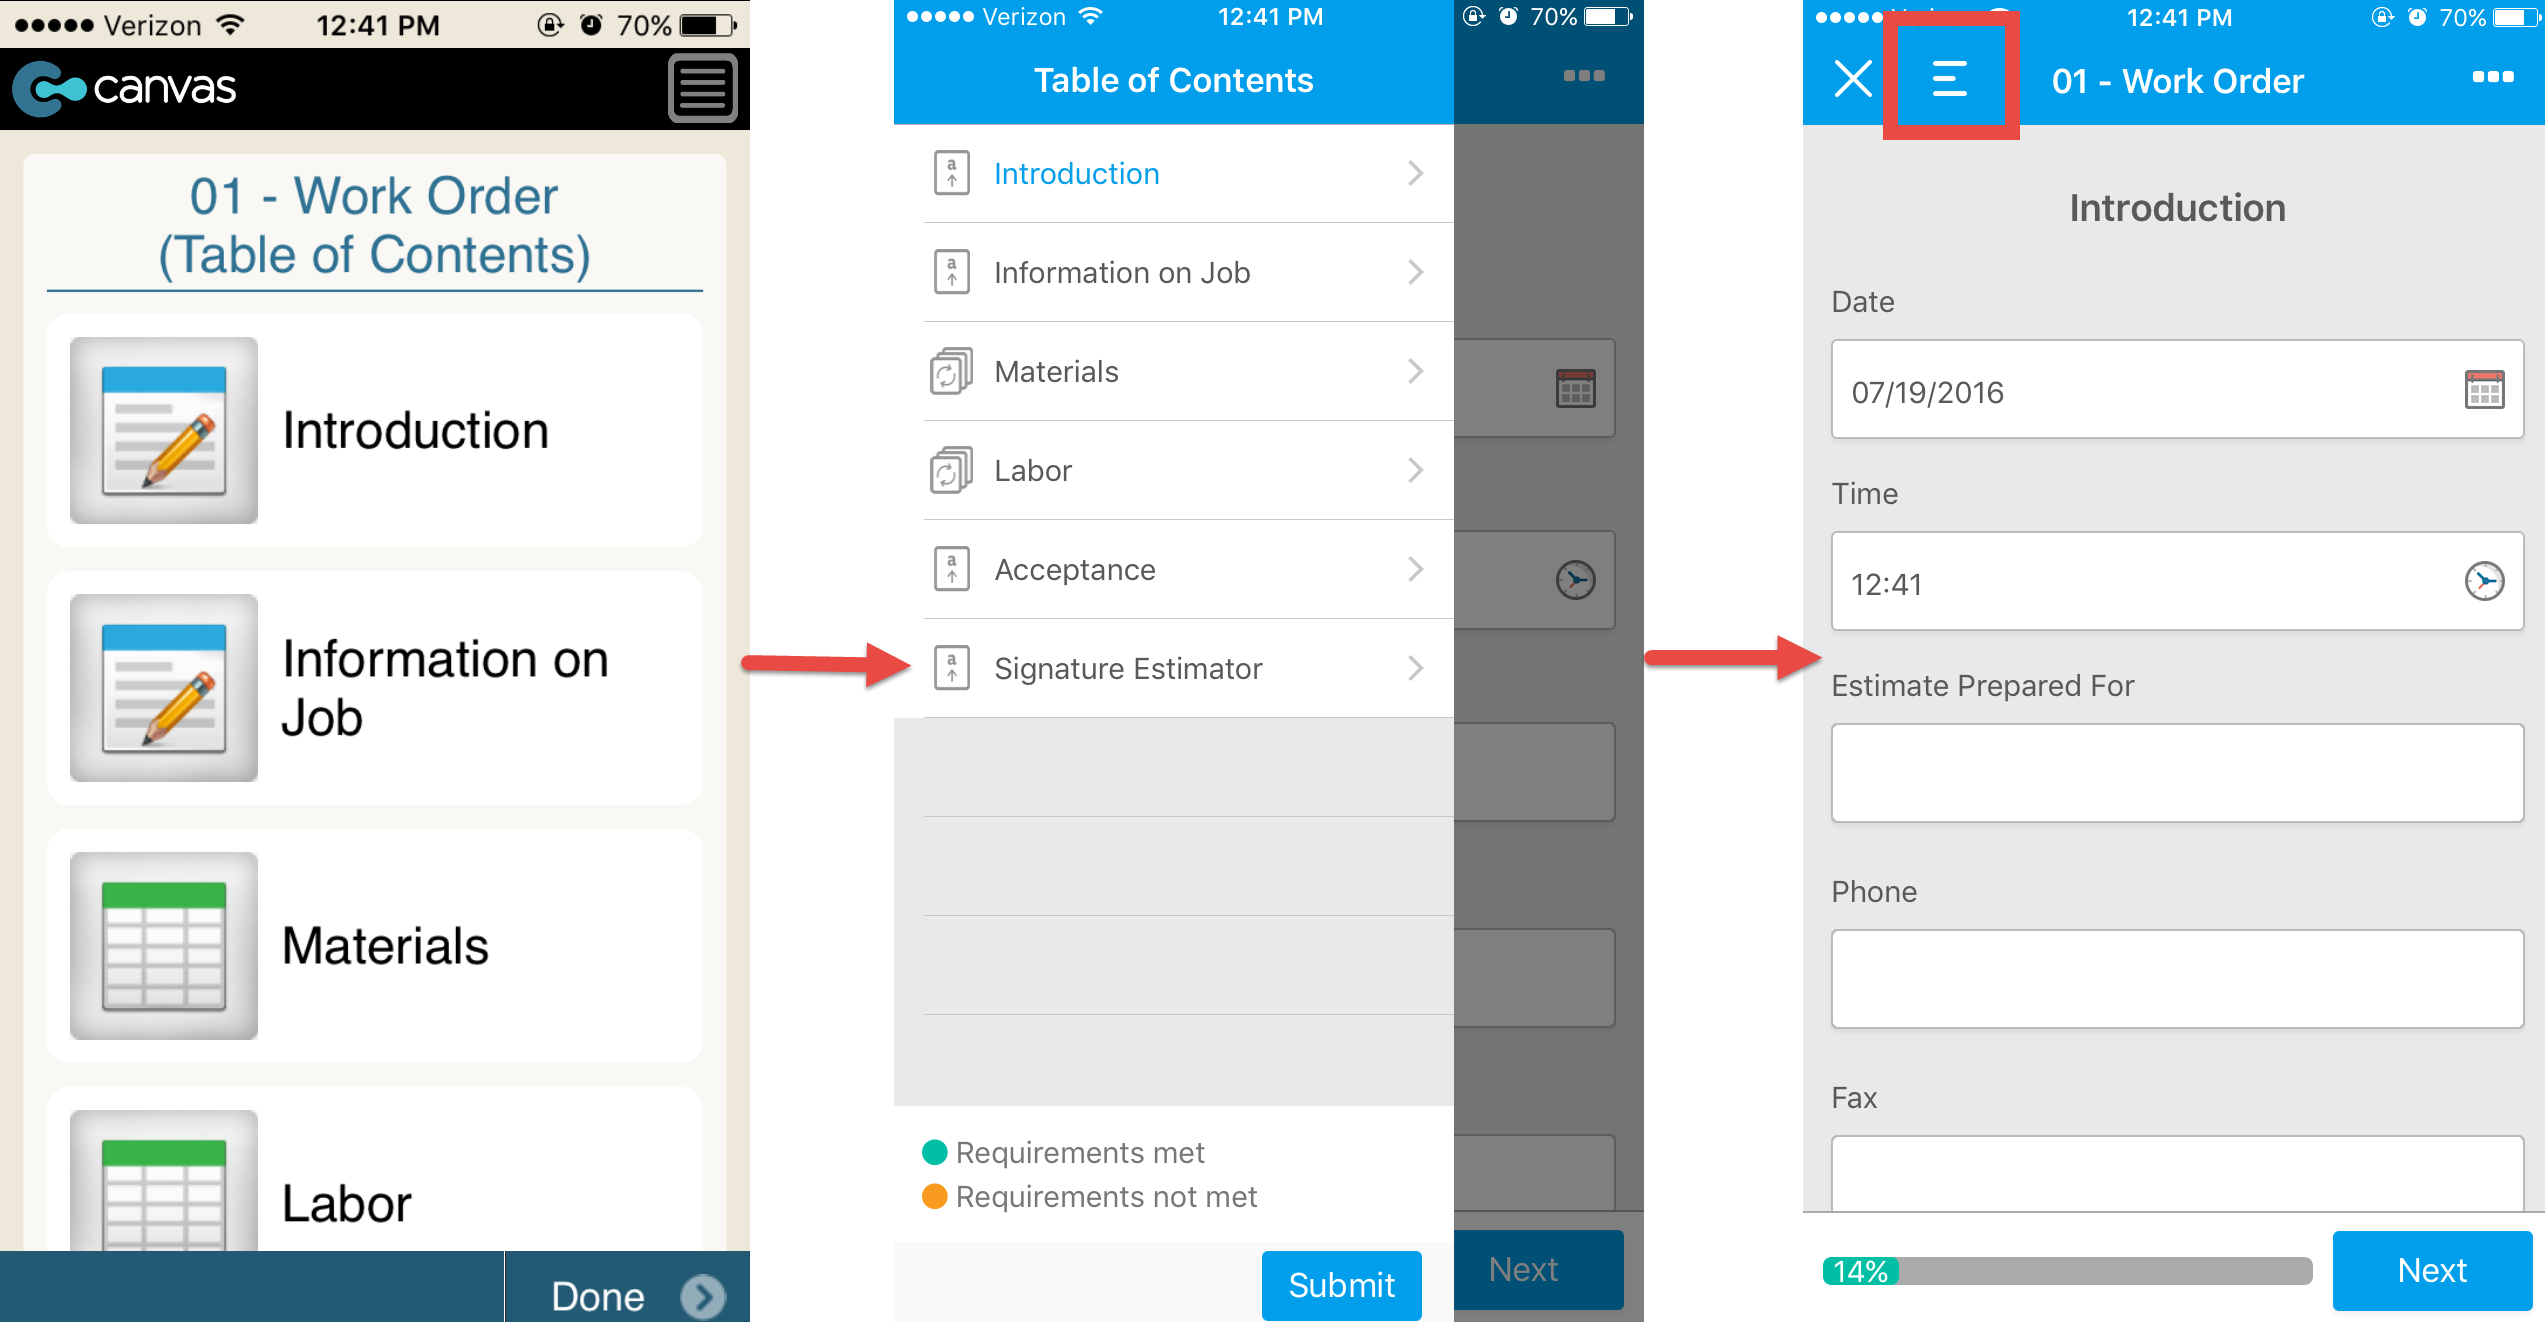 Canvas iOS app. Old table of contents style vs. new 2016 style